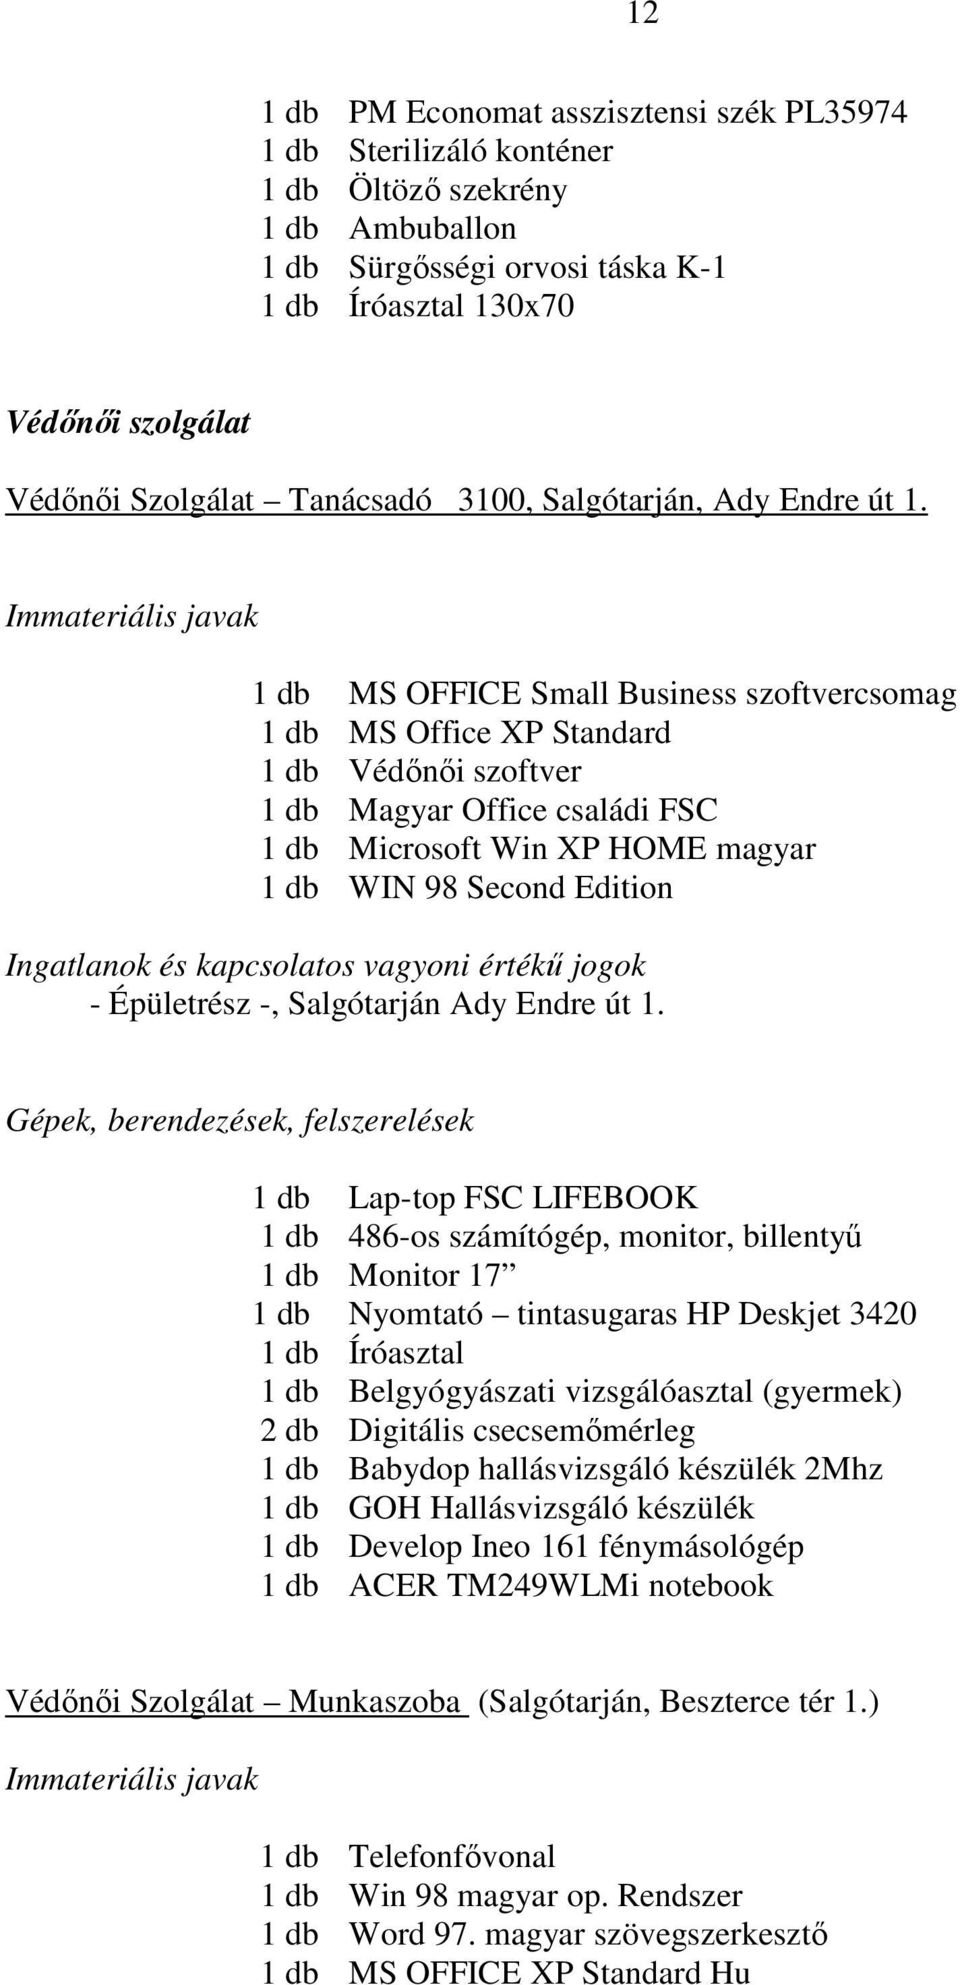 1 db MS OFFICE Small Business szoftvercsomag 1 db MS Office XP Standard 1 db Védınıi szoftver 1 db Magyar Office családi FSC 1 db Microsoft Win XP HOME magyar 1 db WIN 98 Second Edition - Épületrész